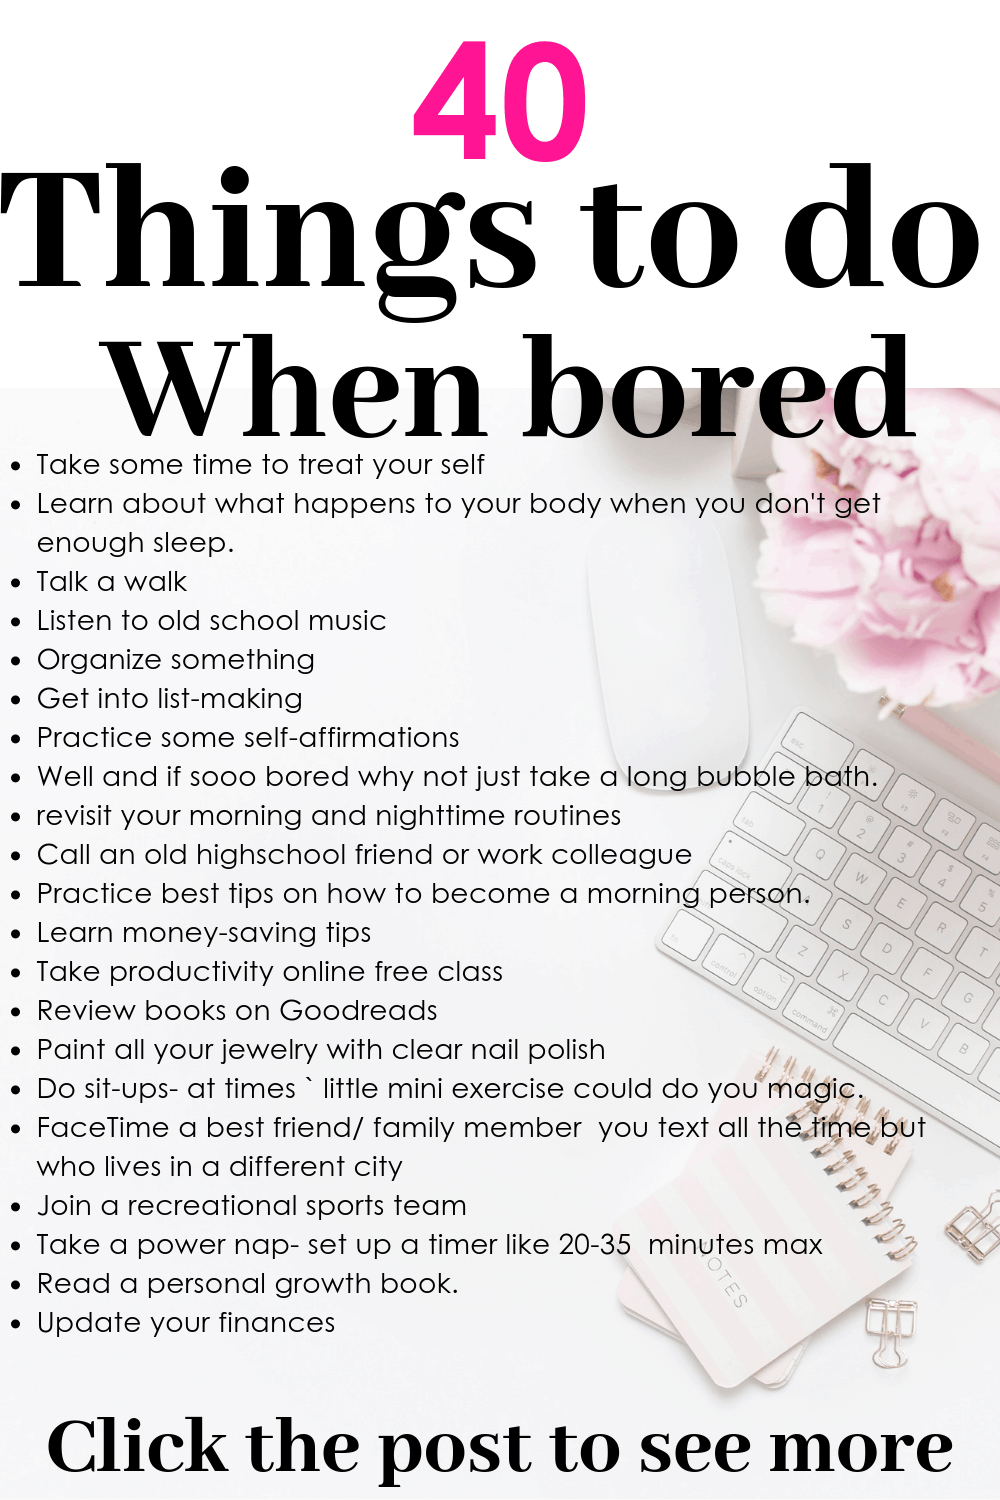 Wondering what fun, creative adult activities or things to do when bored either at home alone, at work or with a friend? This article has over 30 creative bored ideas solution for adults activities that you kill your boredom. Number 16 & 24 are my top best. Click to read the rest. #bored #girlboss #babe #beauty #goals #happy #queen #atwork #bored #alone #idle #beauty#makeup #selflove #selfcare #goals